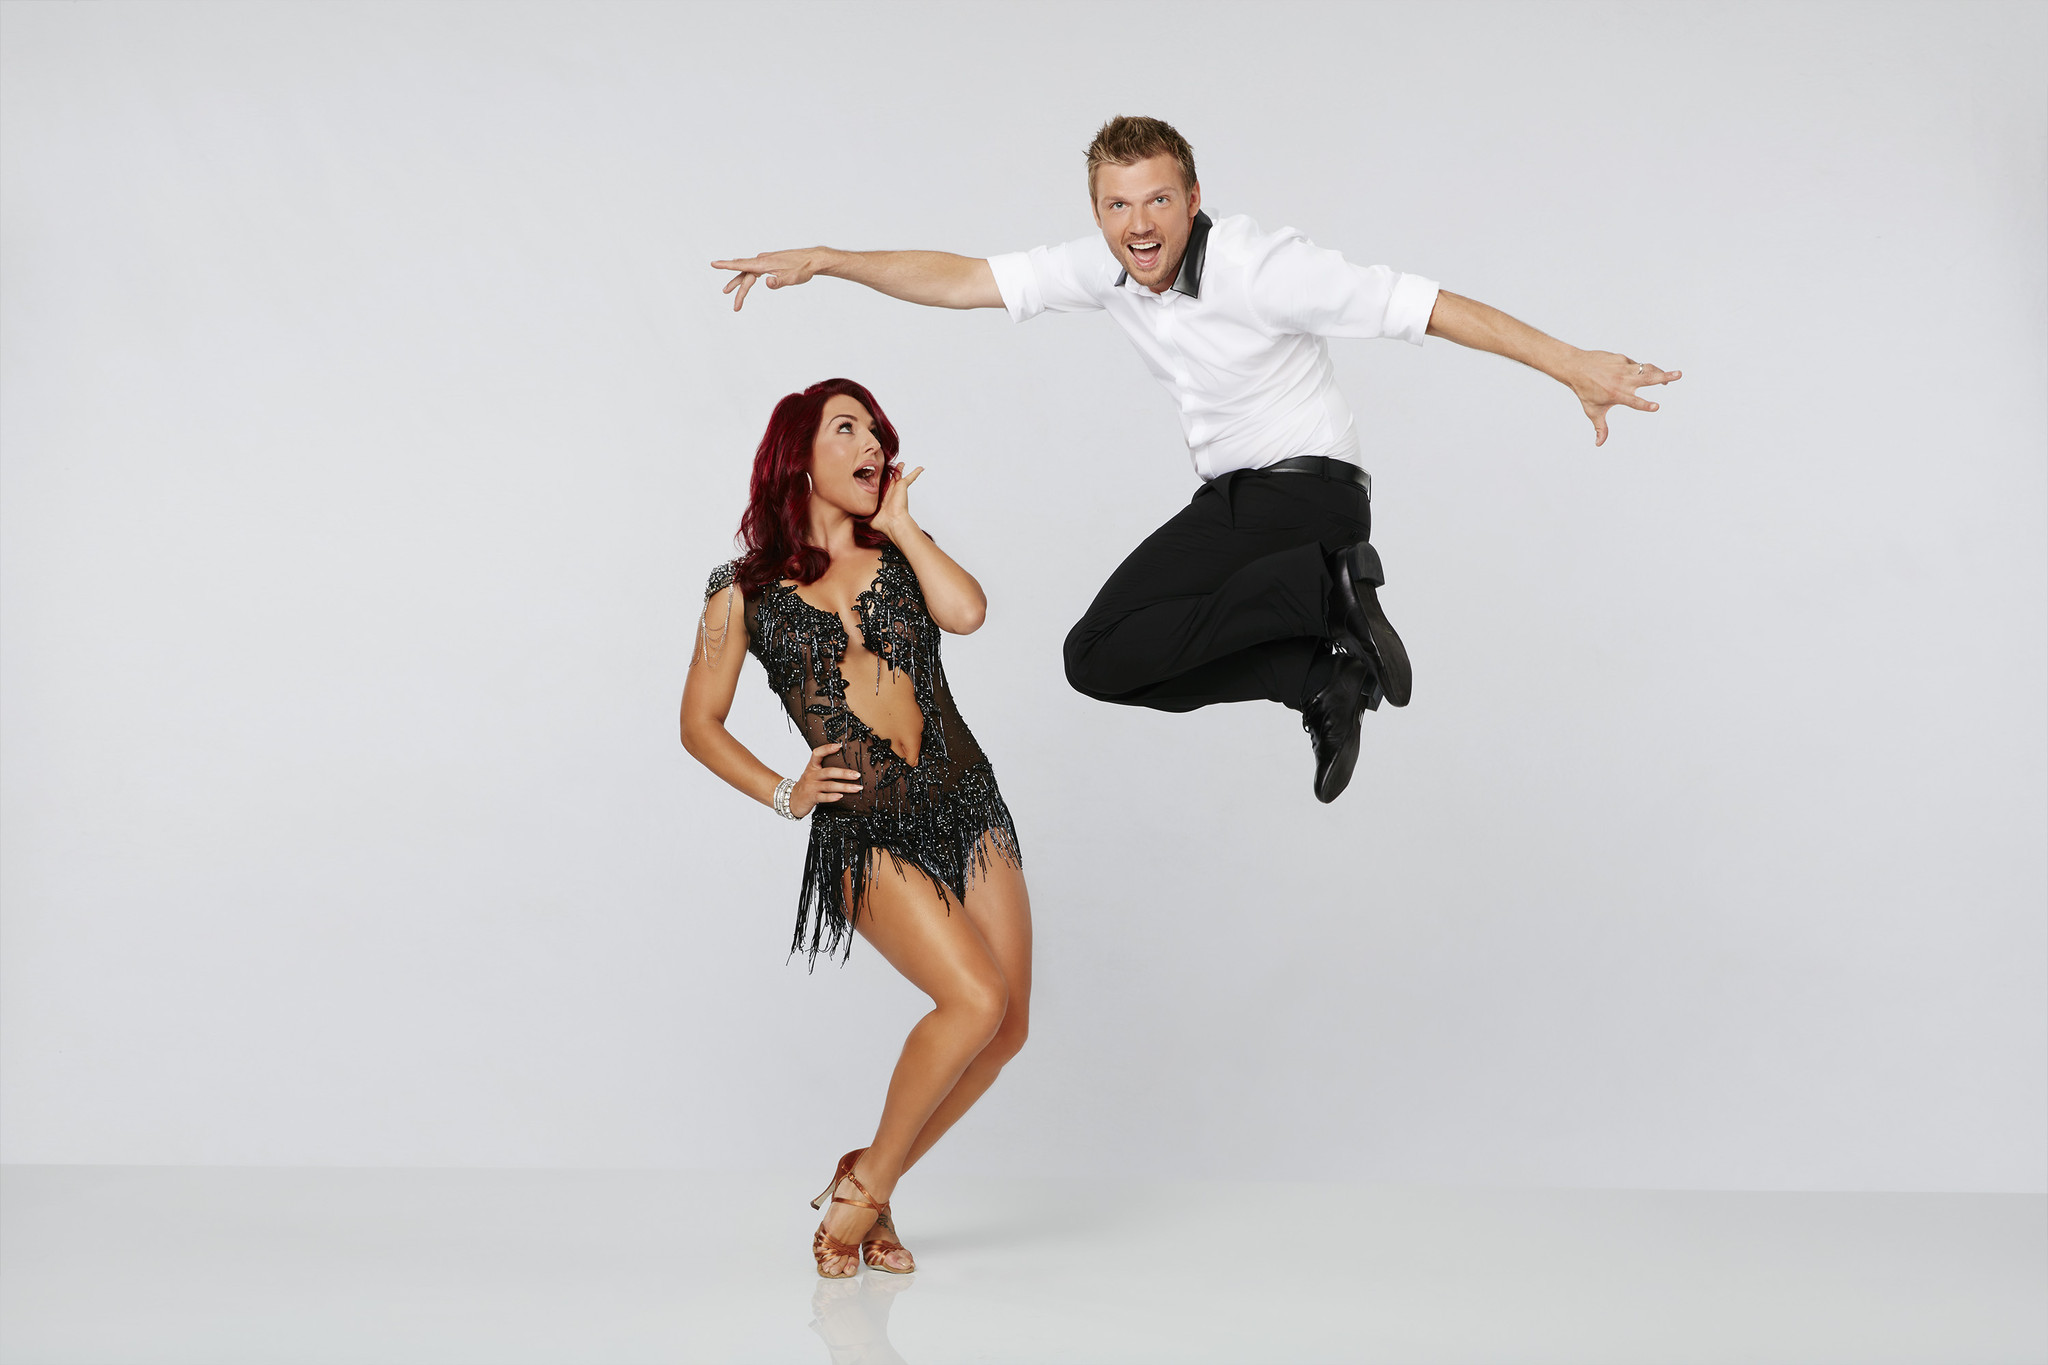 dancing with the stars - photo #27